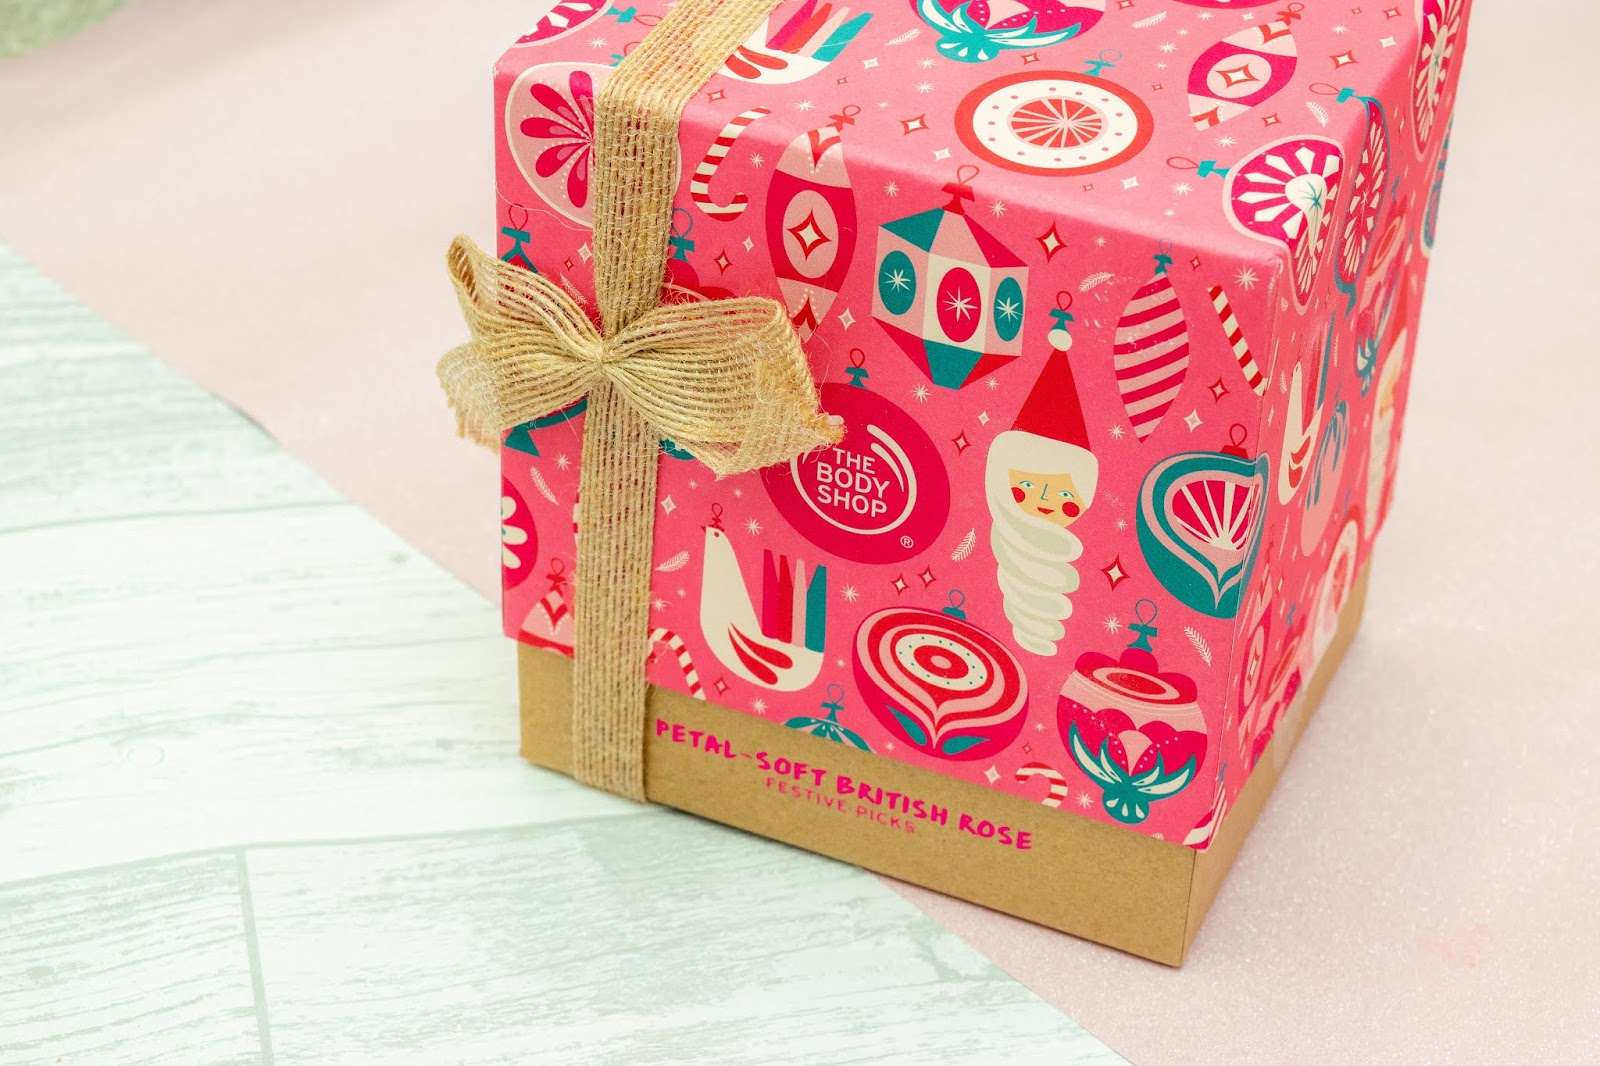 A pink box with Christmassy illustrations and a brown twine ribbon.